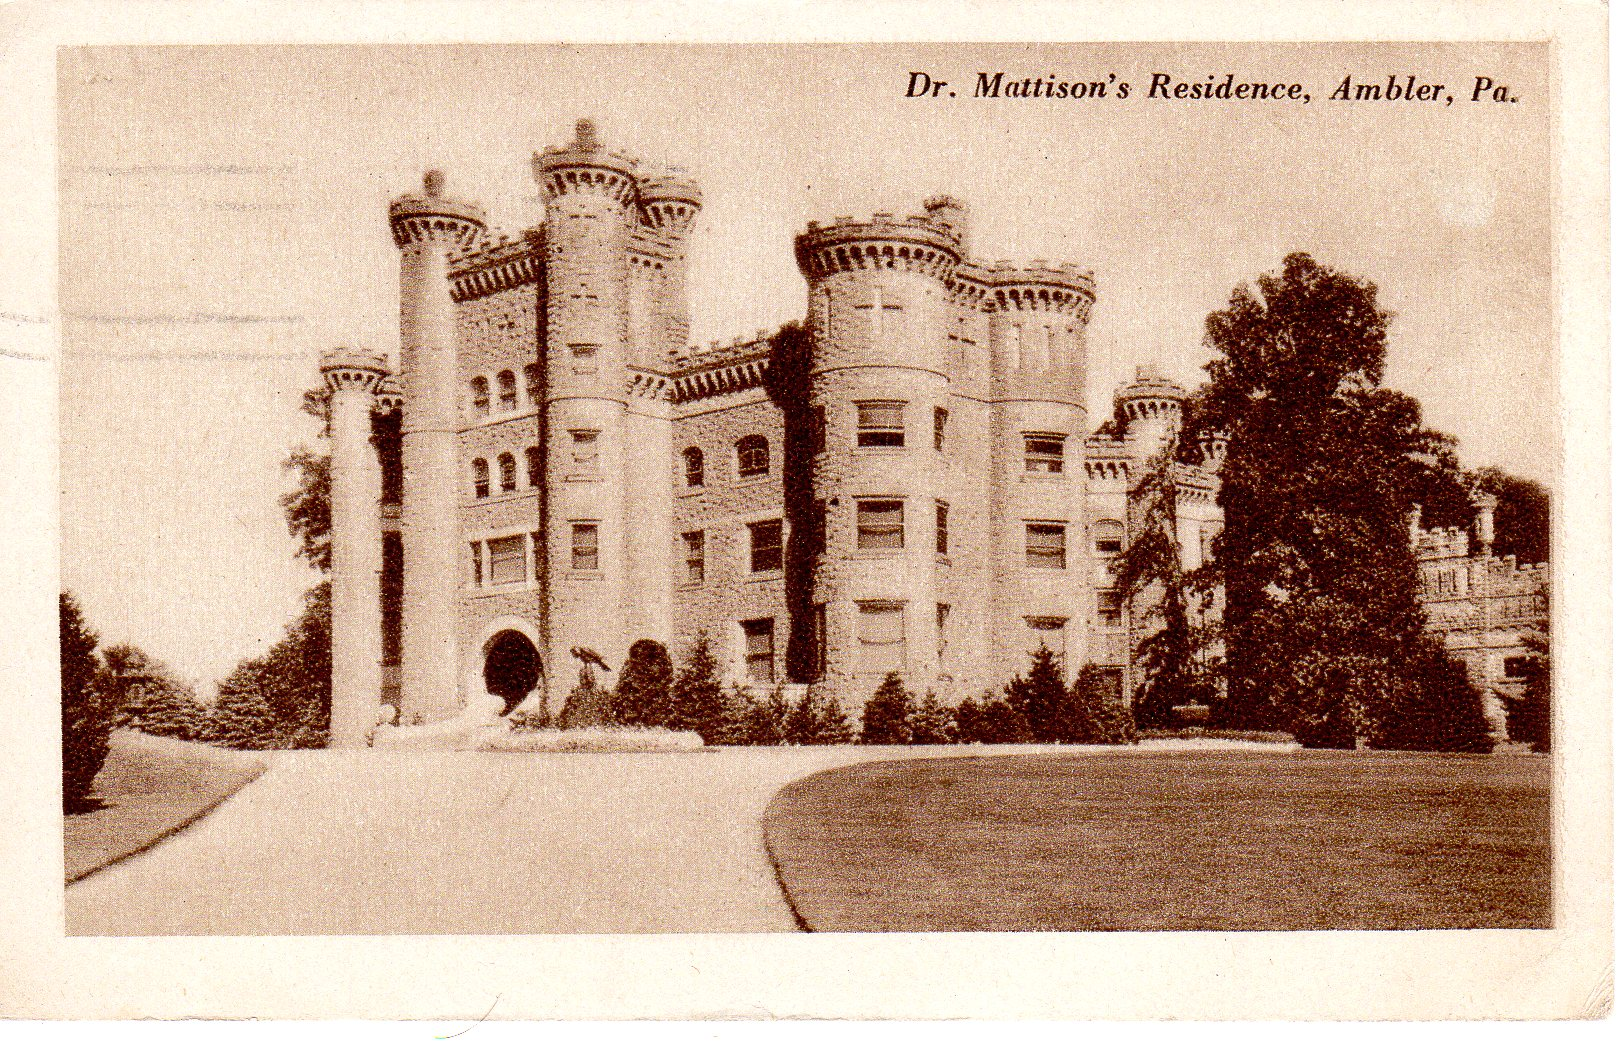 Post Card Collection (E Simon)_2682_39_Dr Mattison Residence, Ambler, Pa_1925